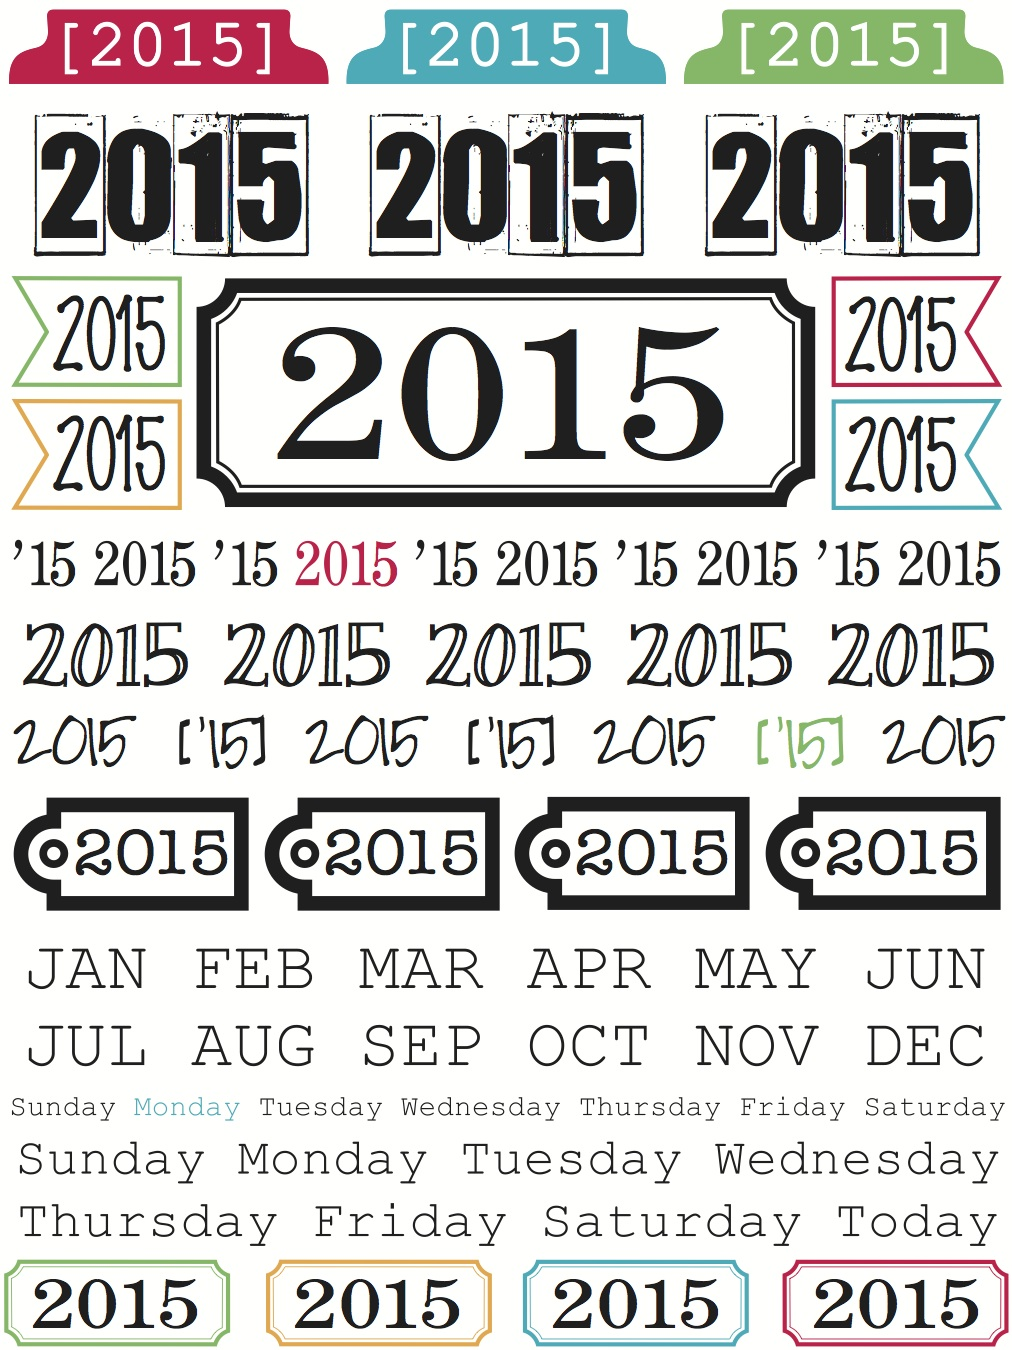 SRM Stickers BLog - New Product Reveal Stickers - #stickers #clear #calendar #2015